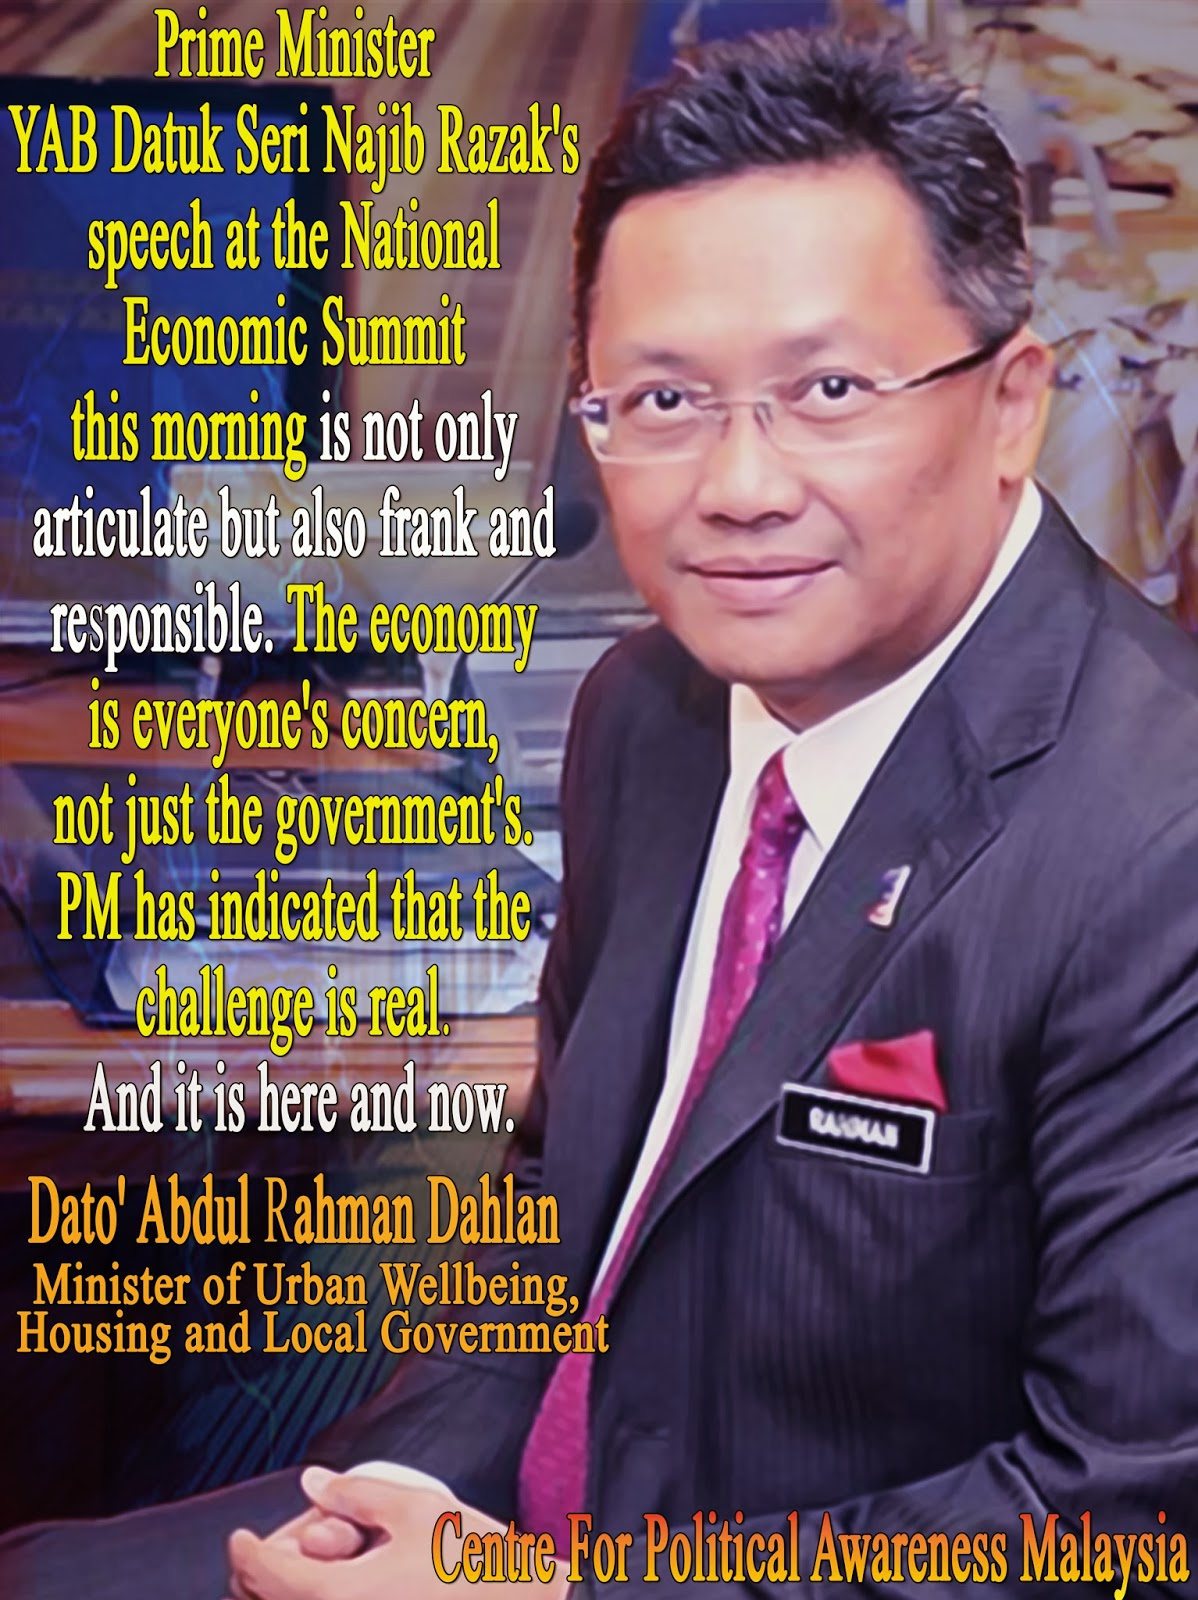 National Economic Summit PM has indicated that the challenge is real